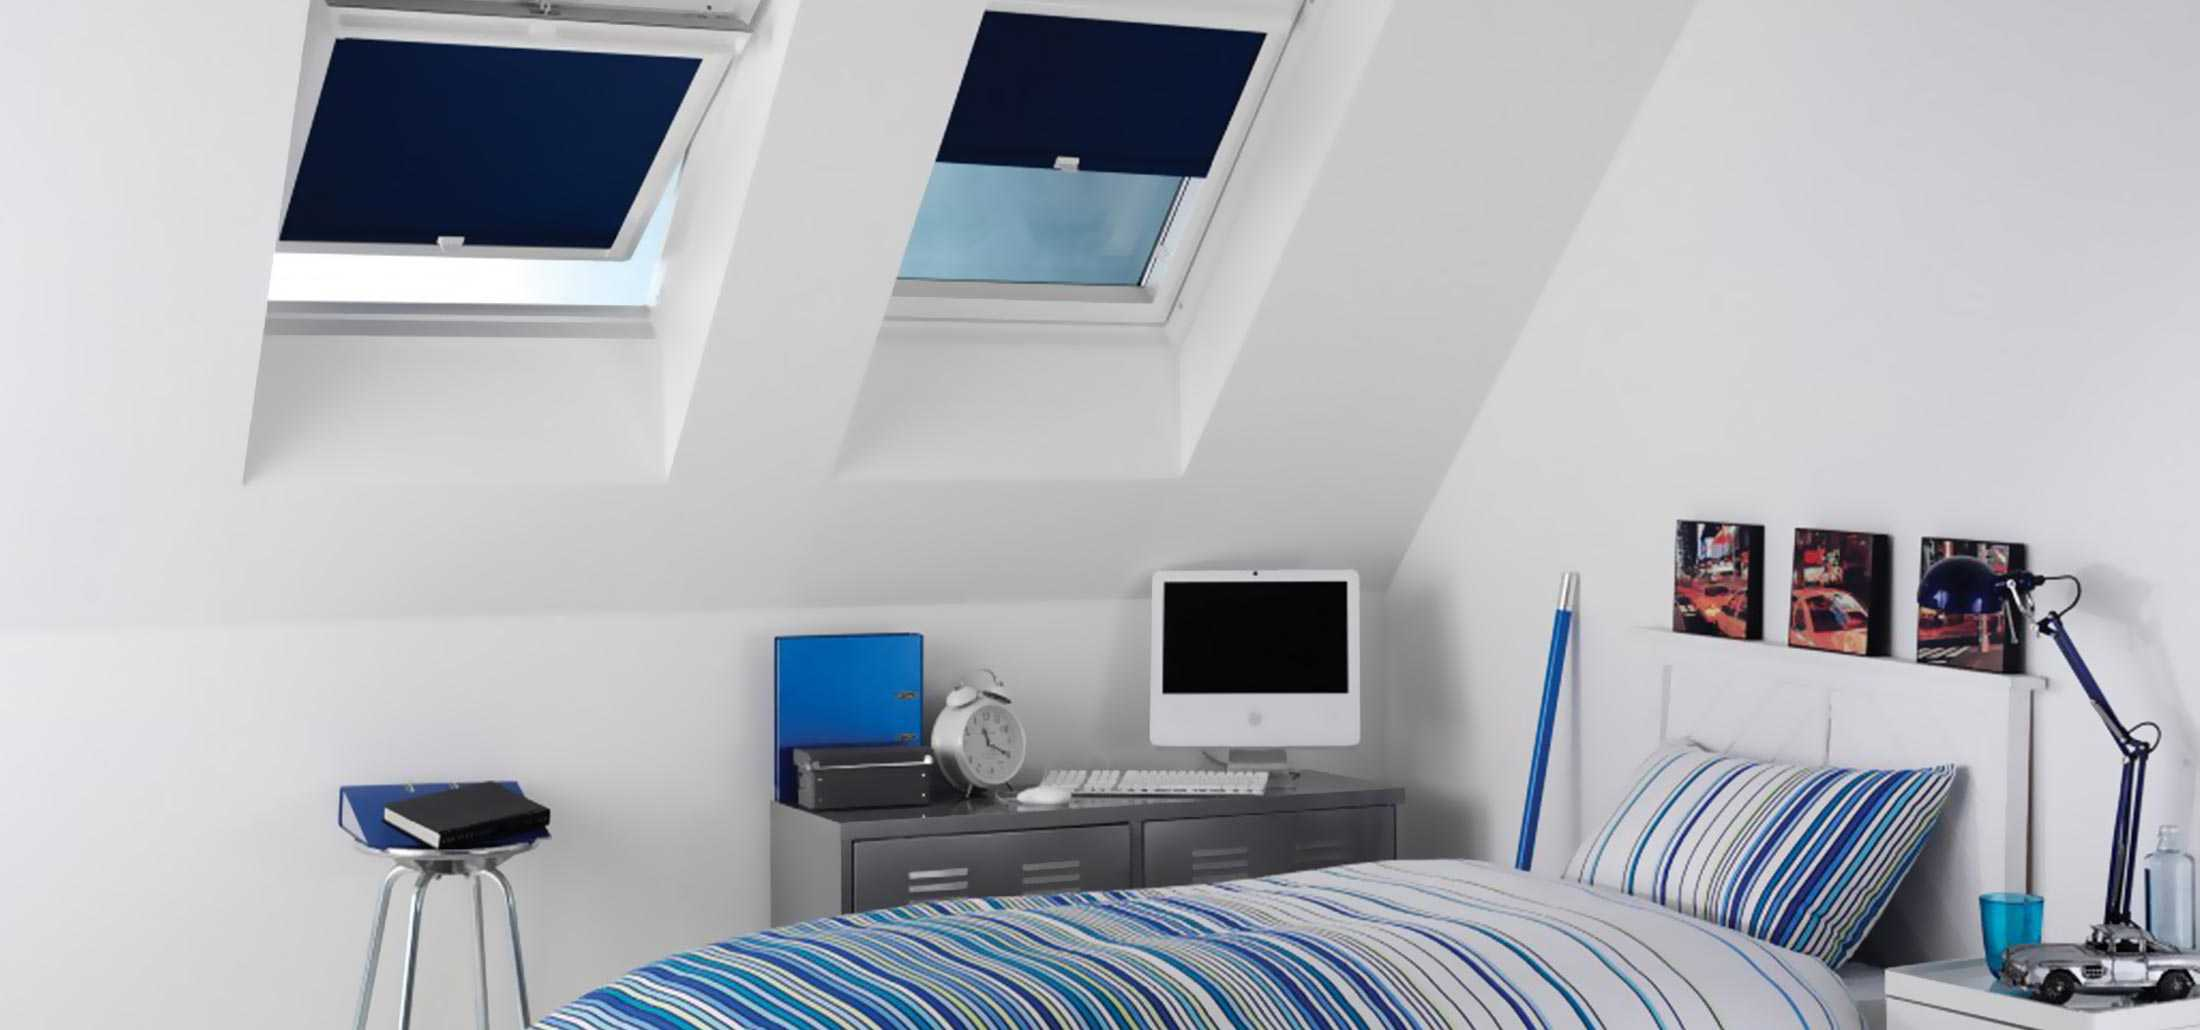 gain s skylight of few separately scene each control douglas created operated a pebble decor gordon remote solar stunning window dsc or shades skylights can with hunter portfolio select shade be blinds